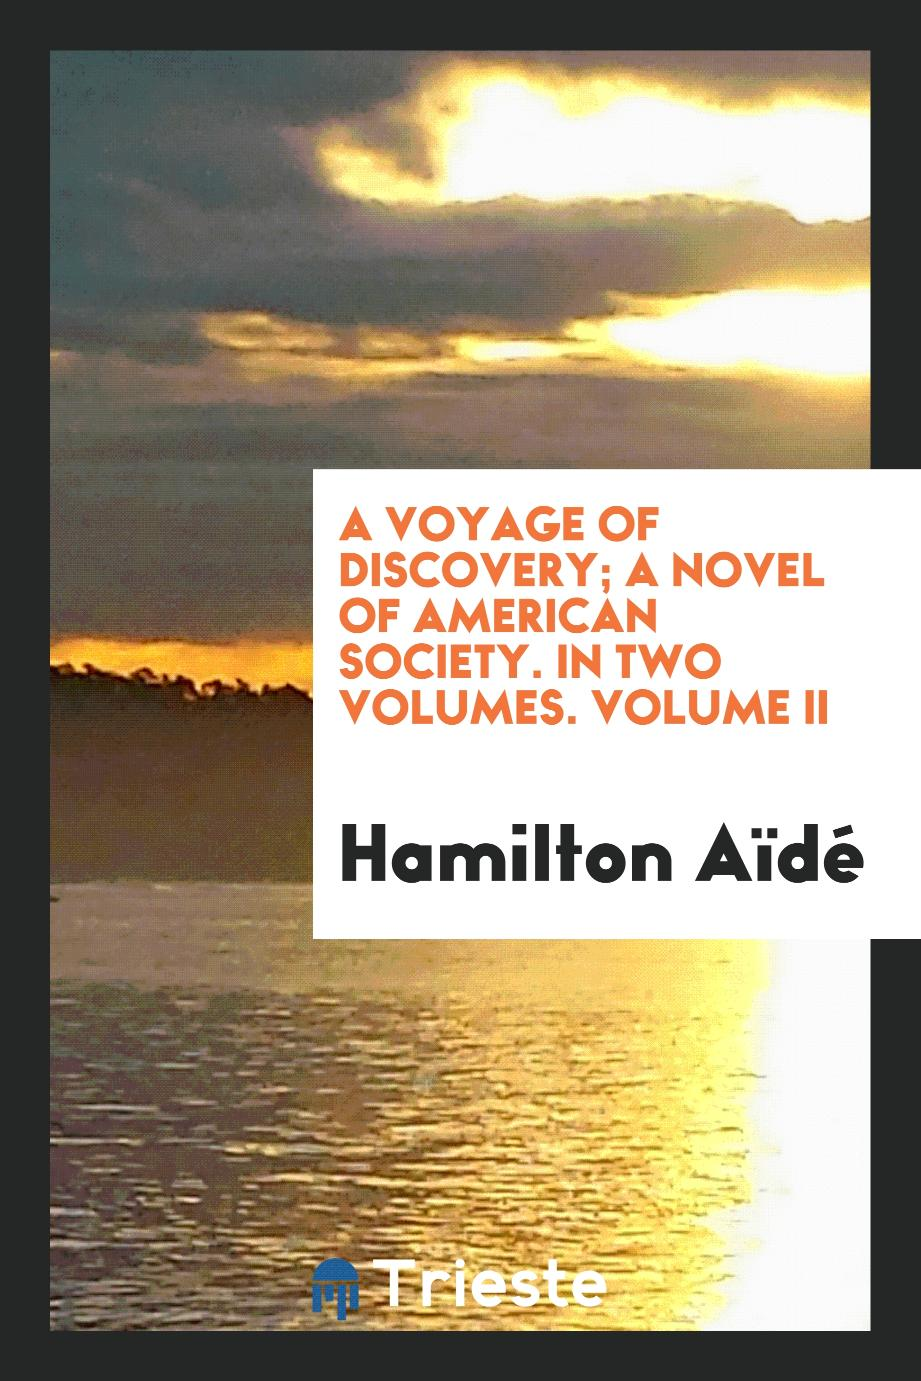 A Voyage of Discovery; a Novel of American Society. In Two Volumes. Volume II